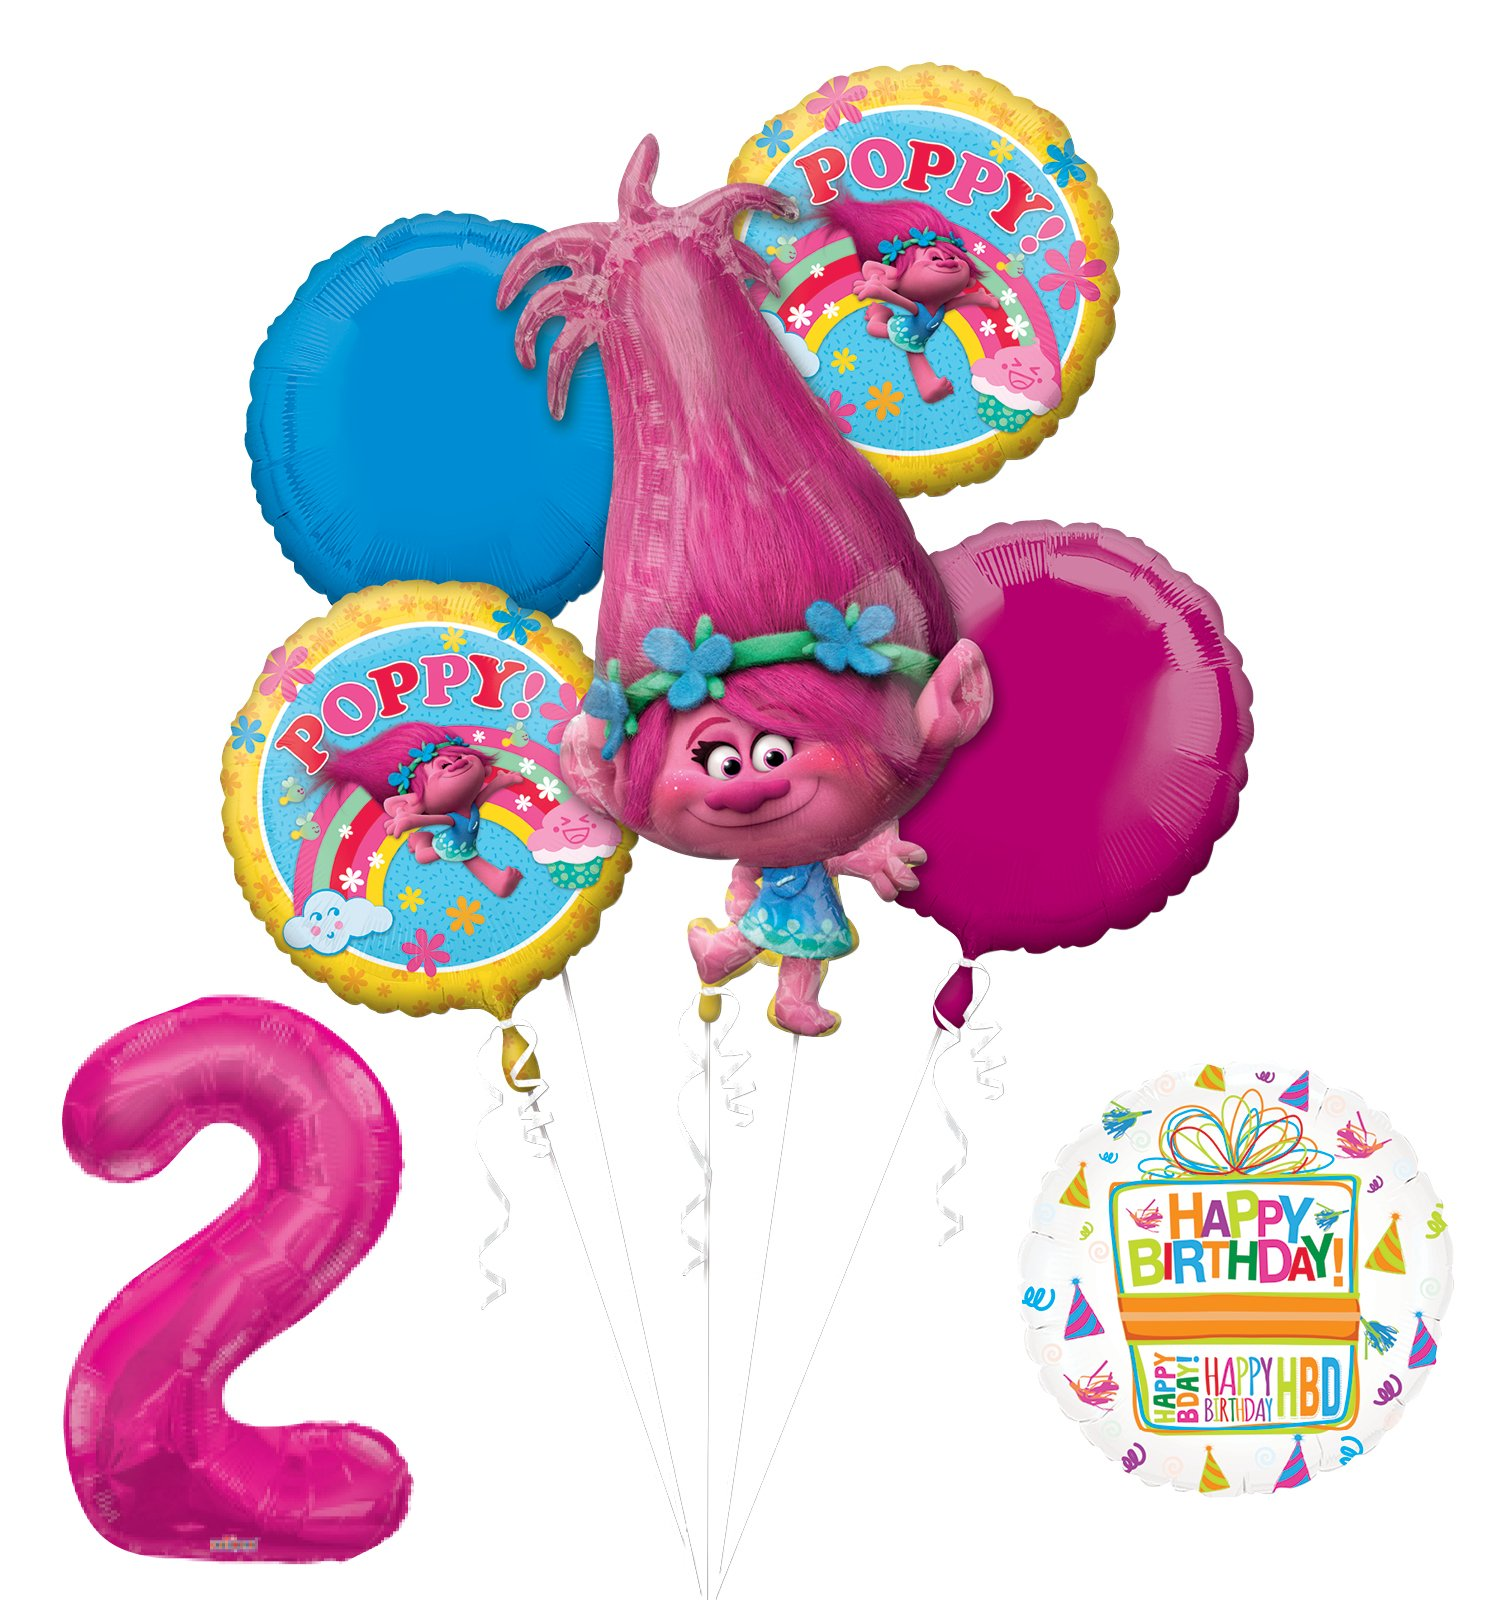 Mayflower Products NEW TROLLS POPPY 2nd Birthday Party Supplies And Balloon Bouquet Decorations